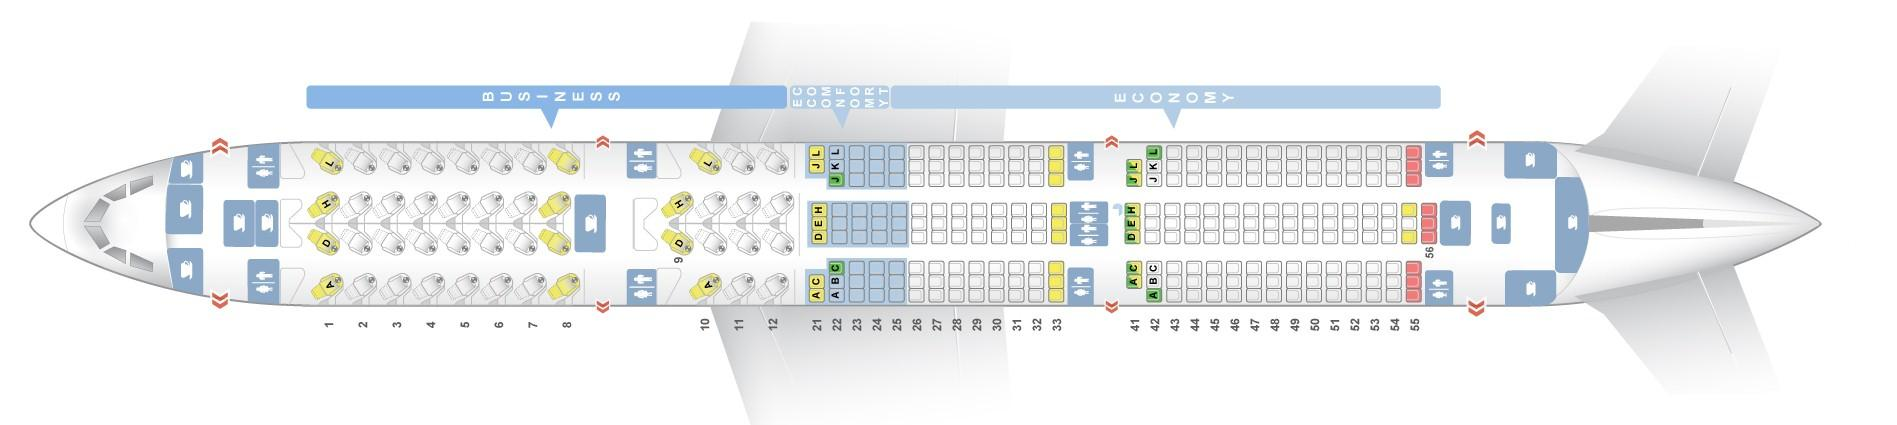 Seat map Airbus A350-900